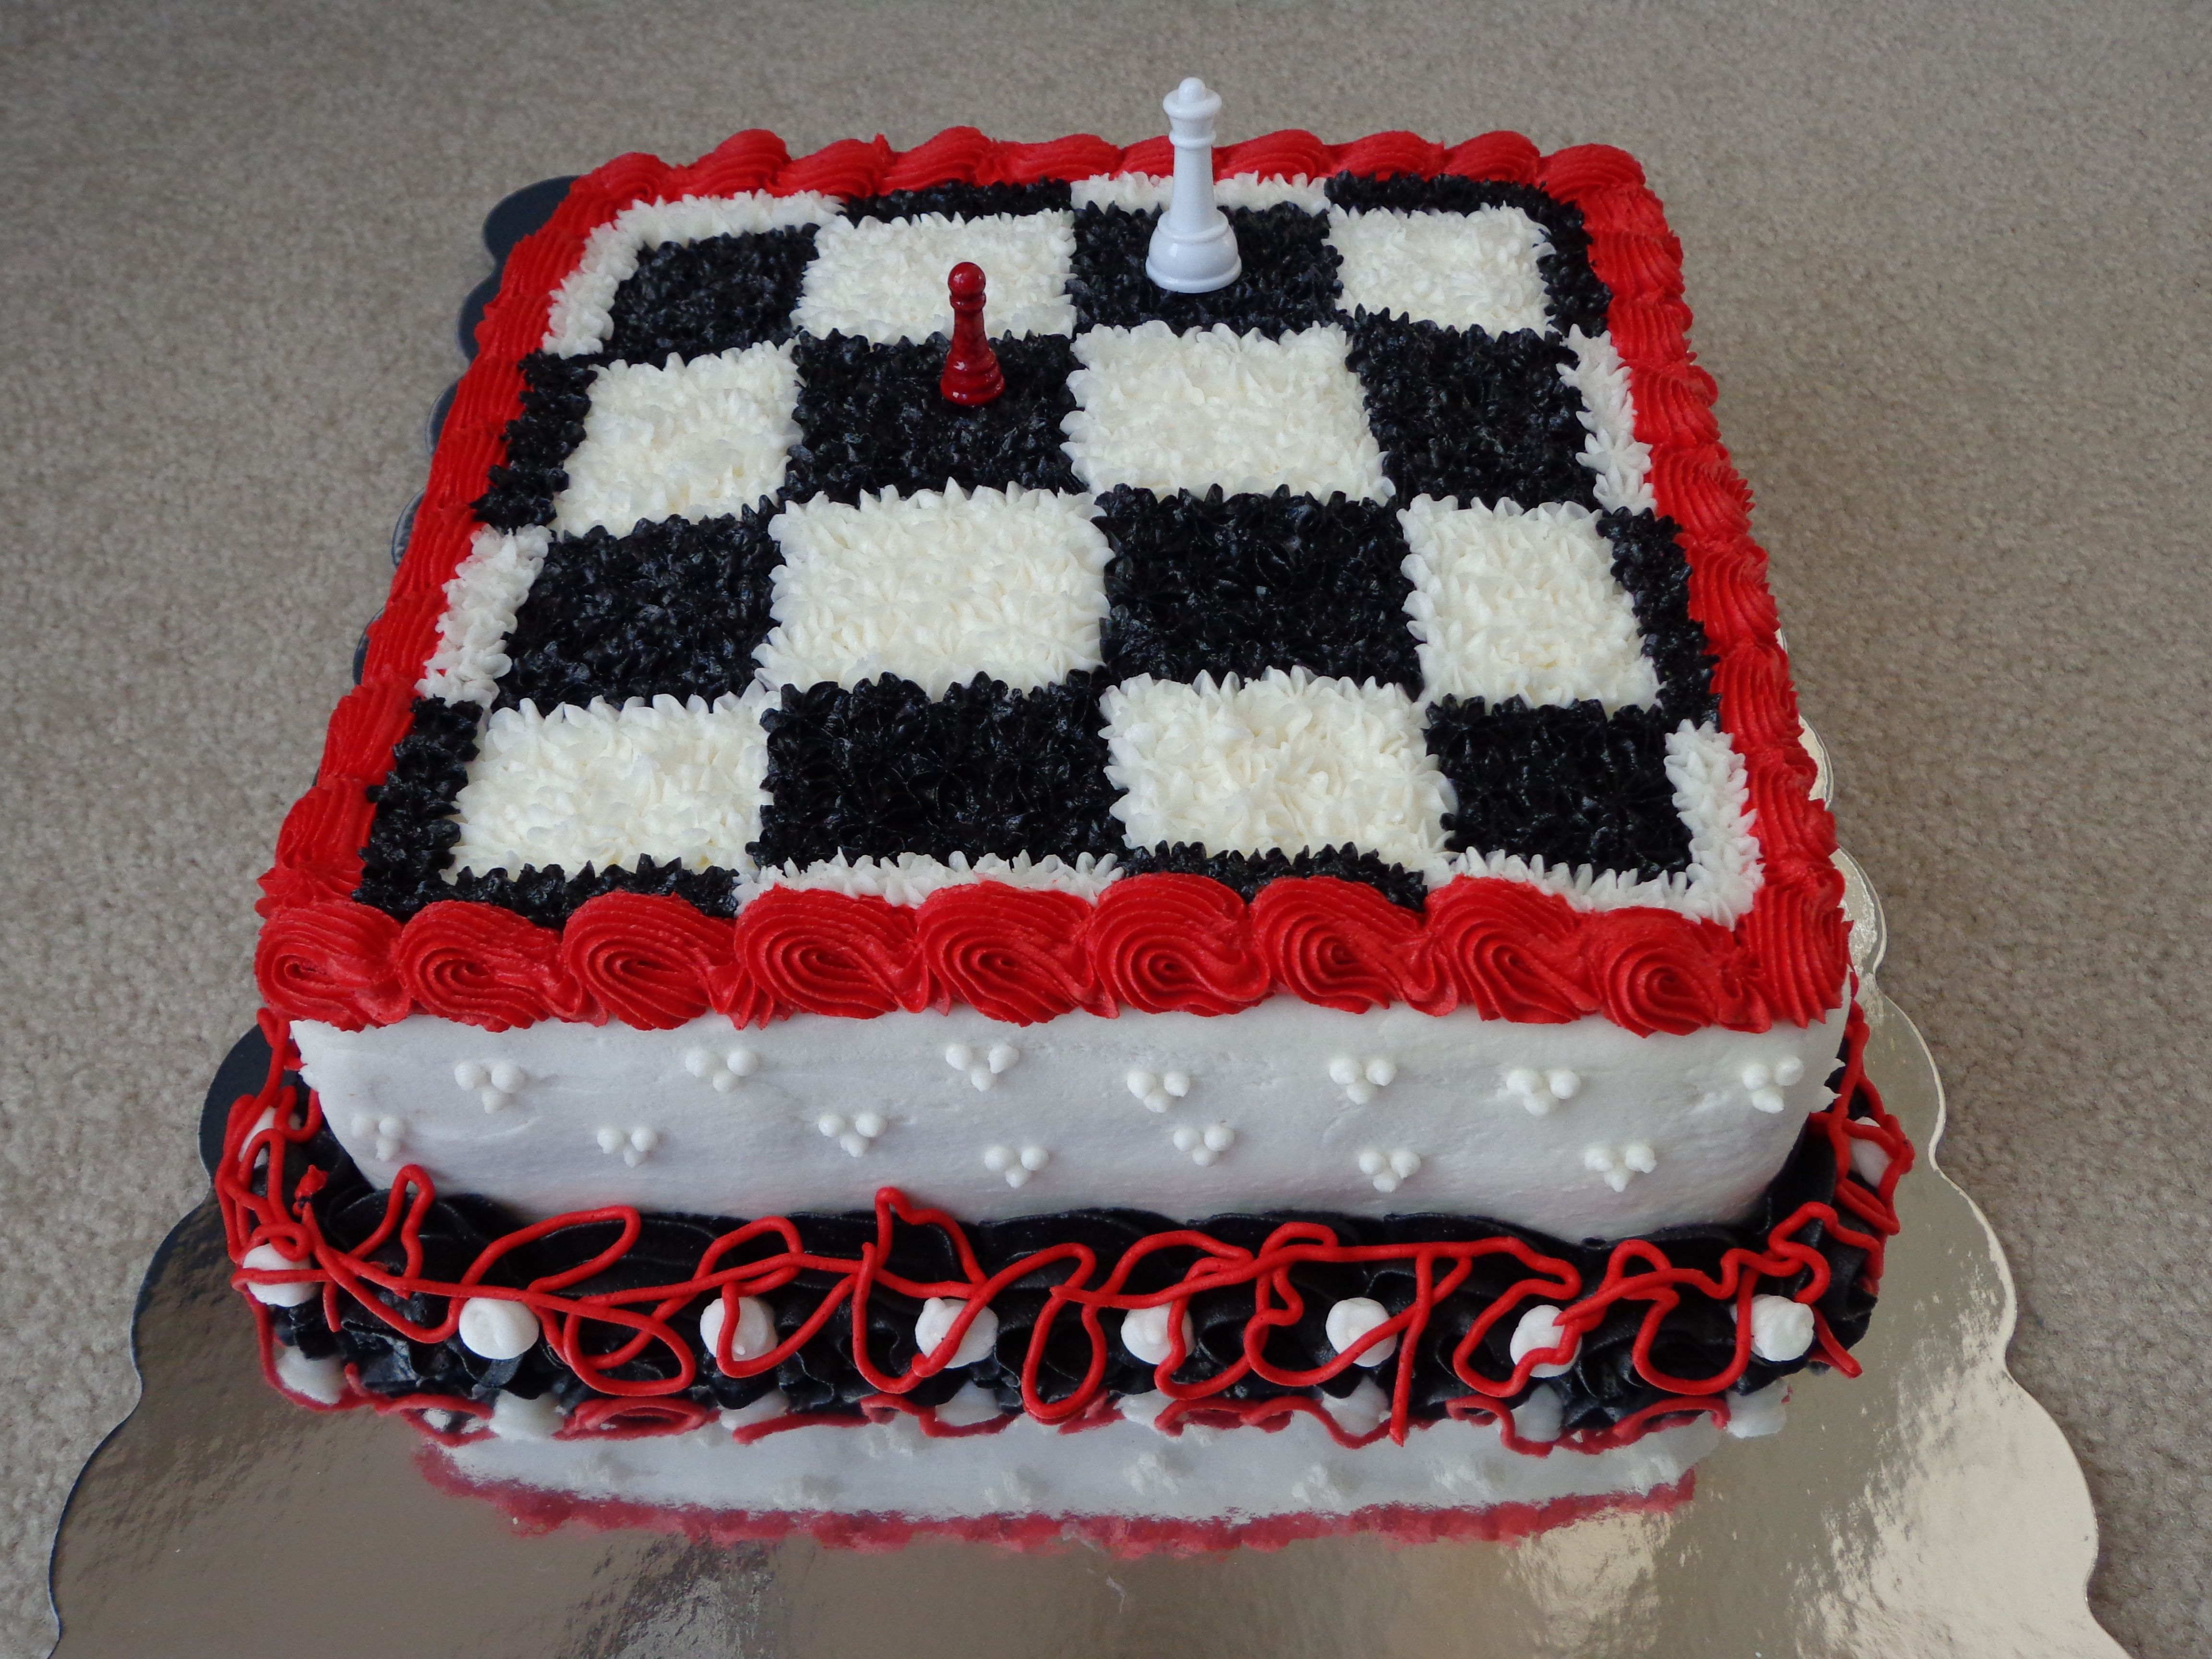 Twilight Breaking Dawn Themed Cake With Chess Pieces